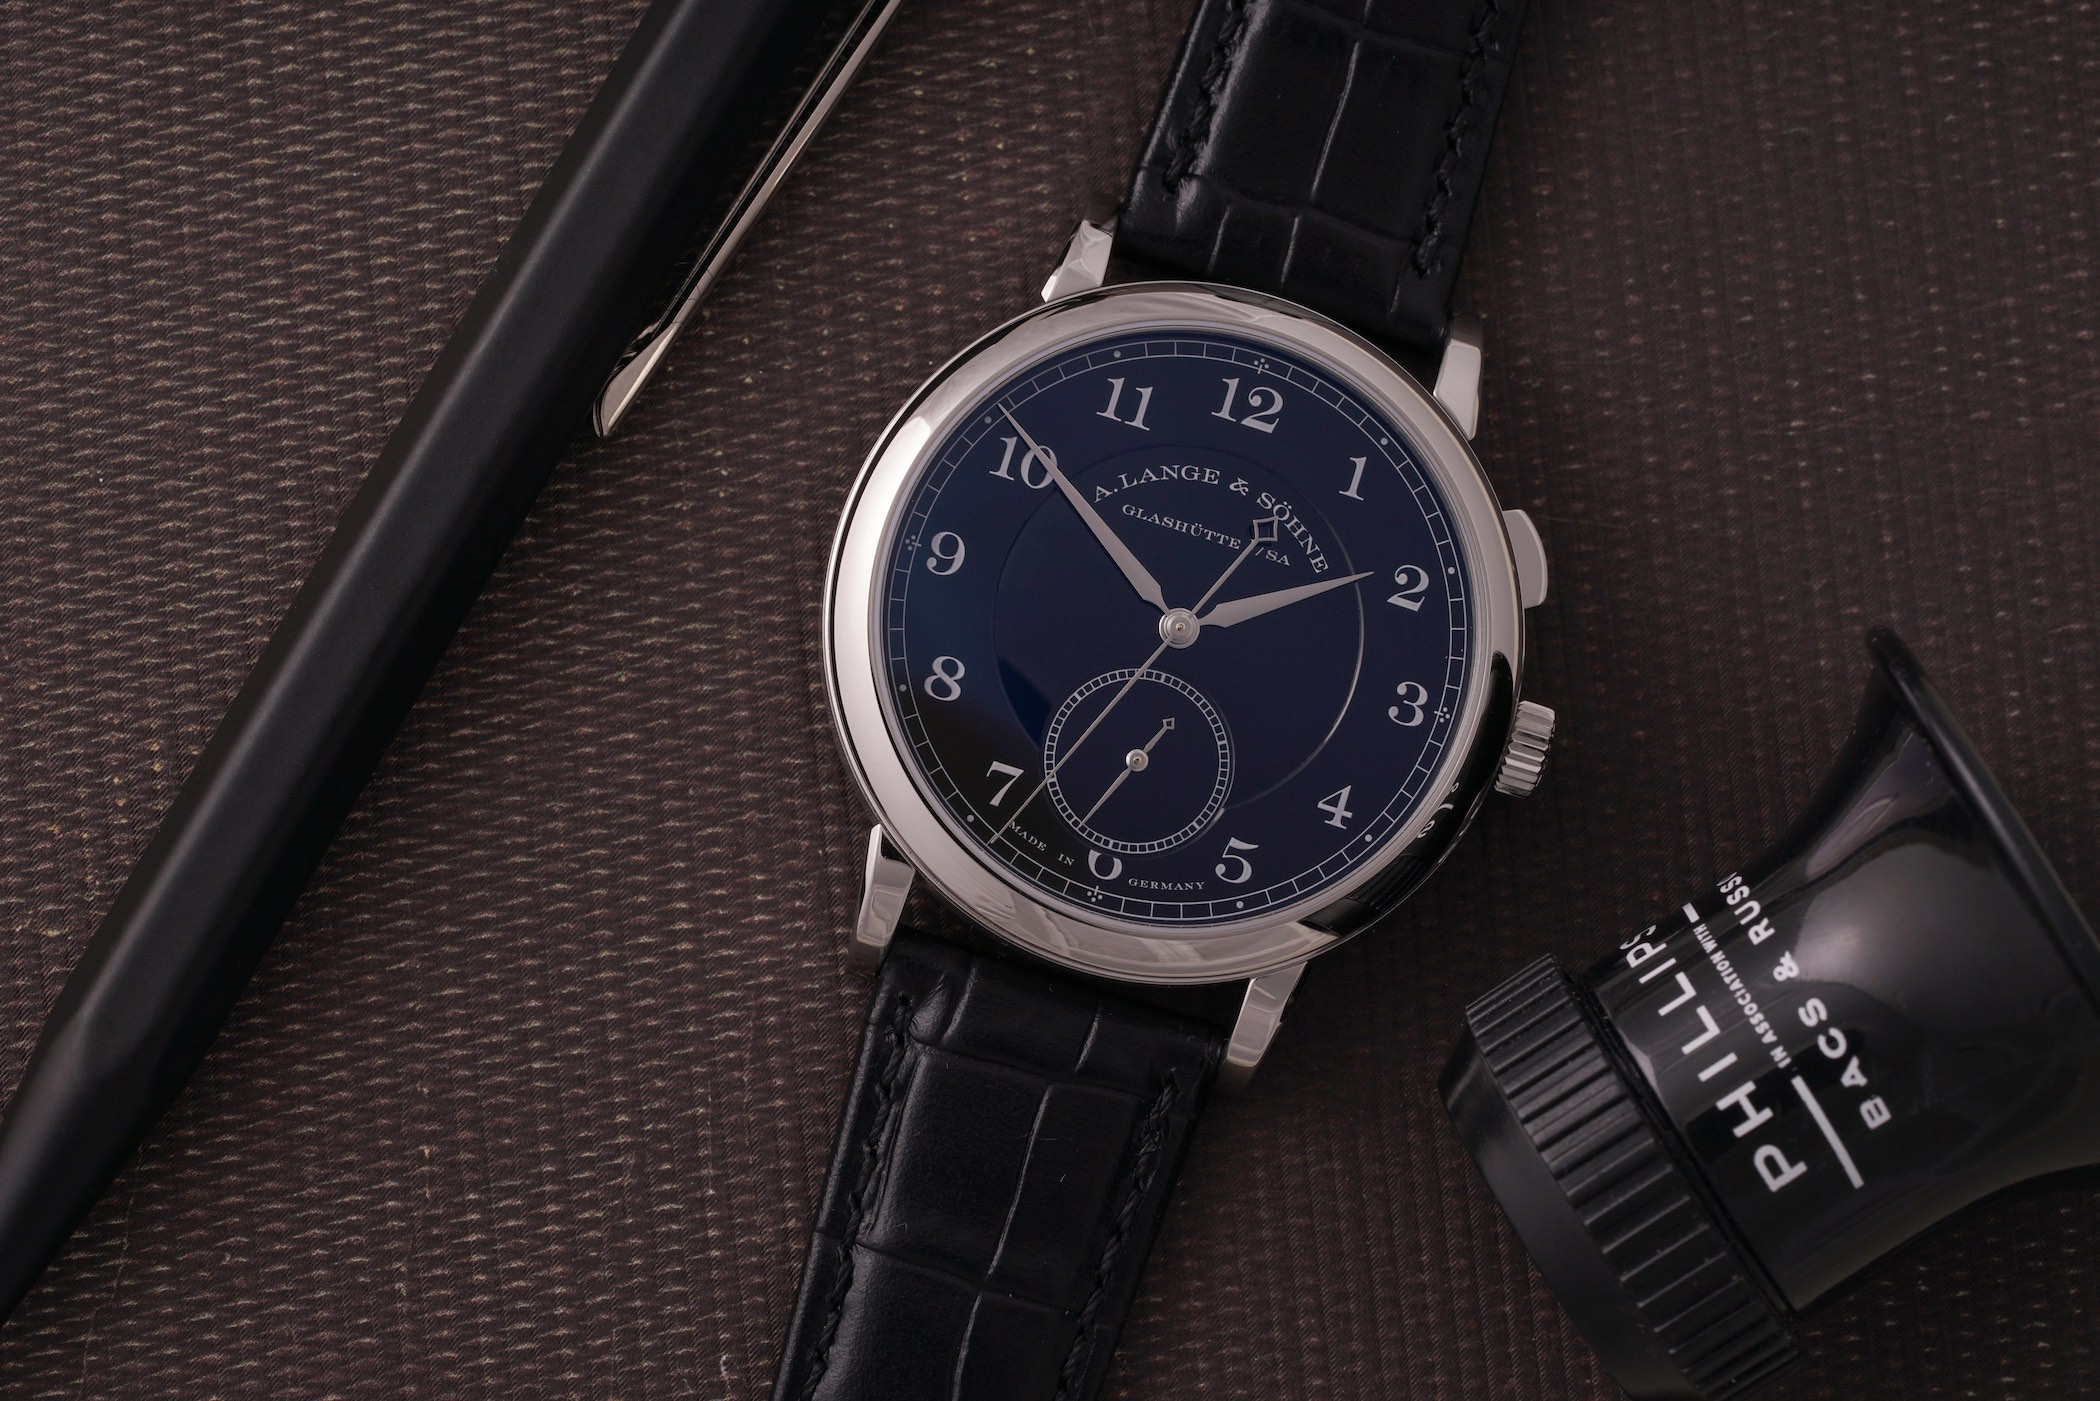 A. Lange Sohne 1815 Homage to Walter Lange Unique Piece Steel Auction Phillips Watches